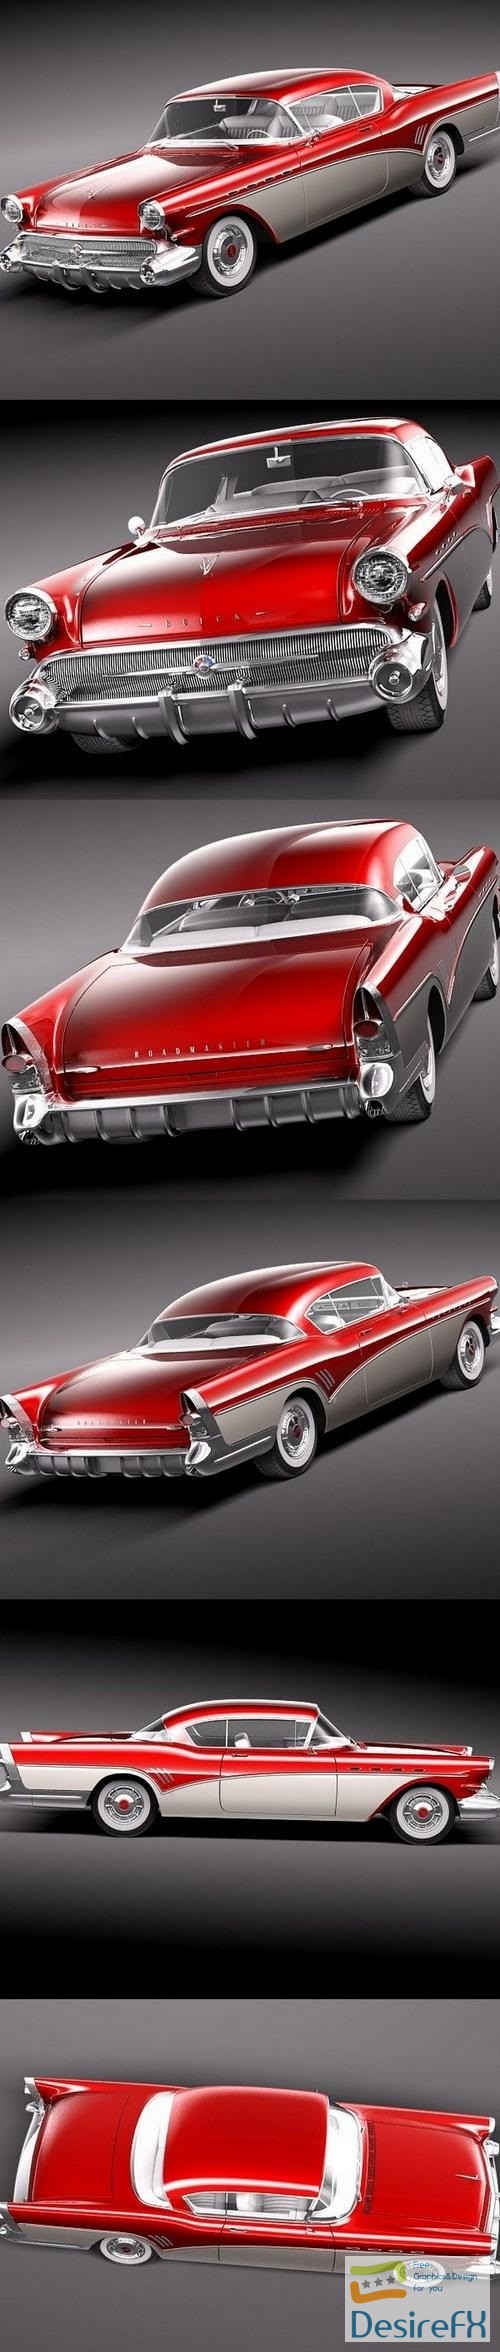 3d-models - Buick Roadmaster 1957 3d Model